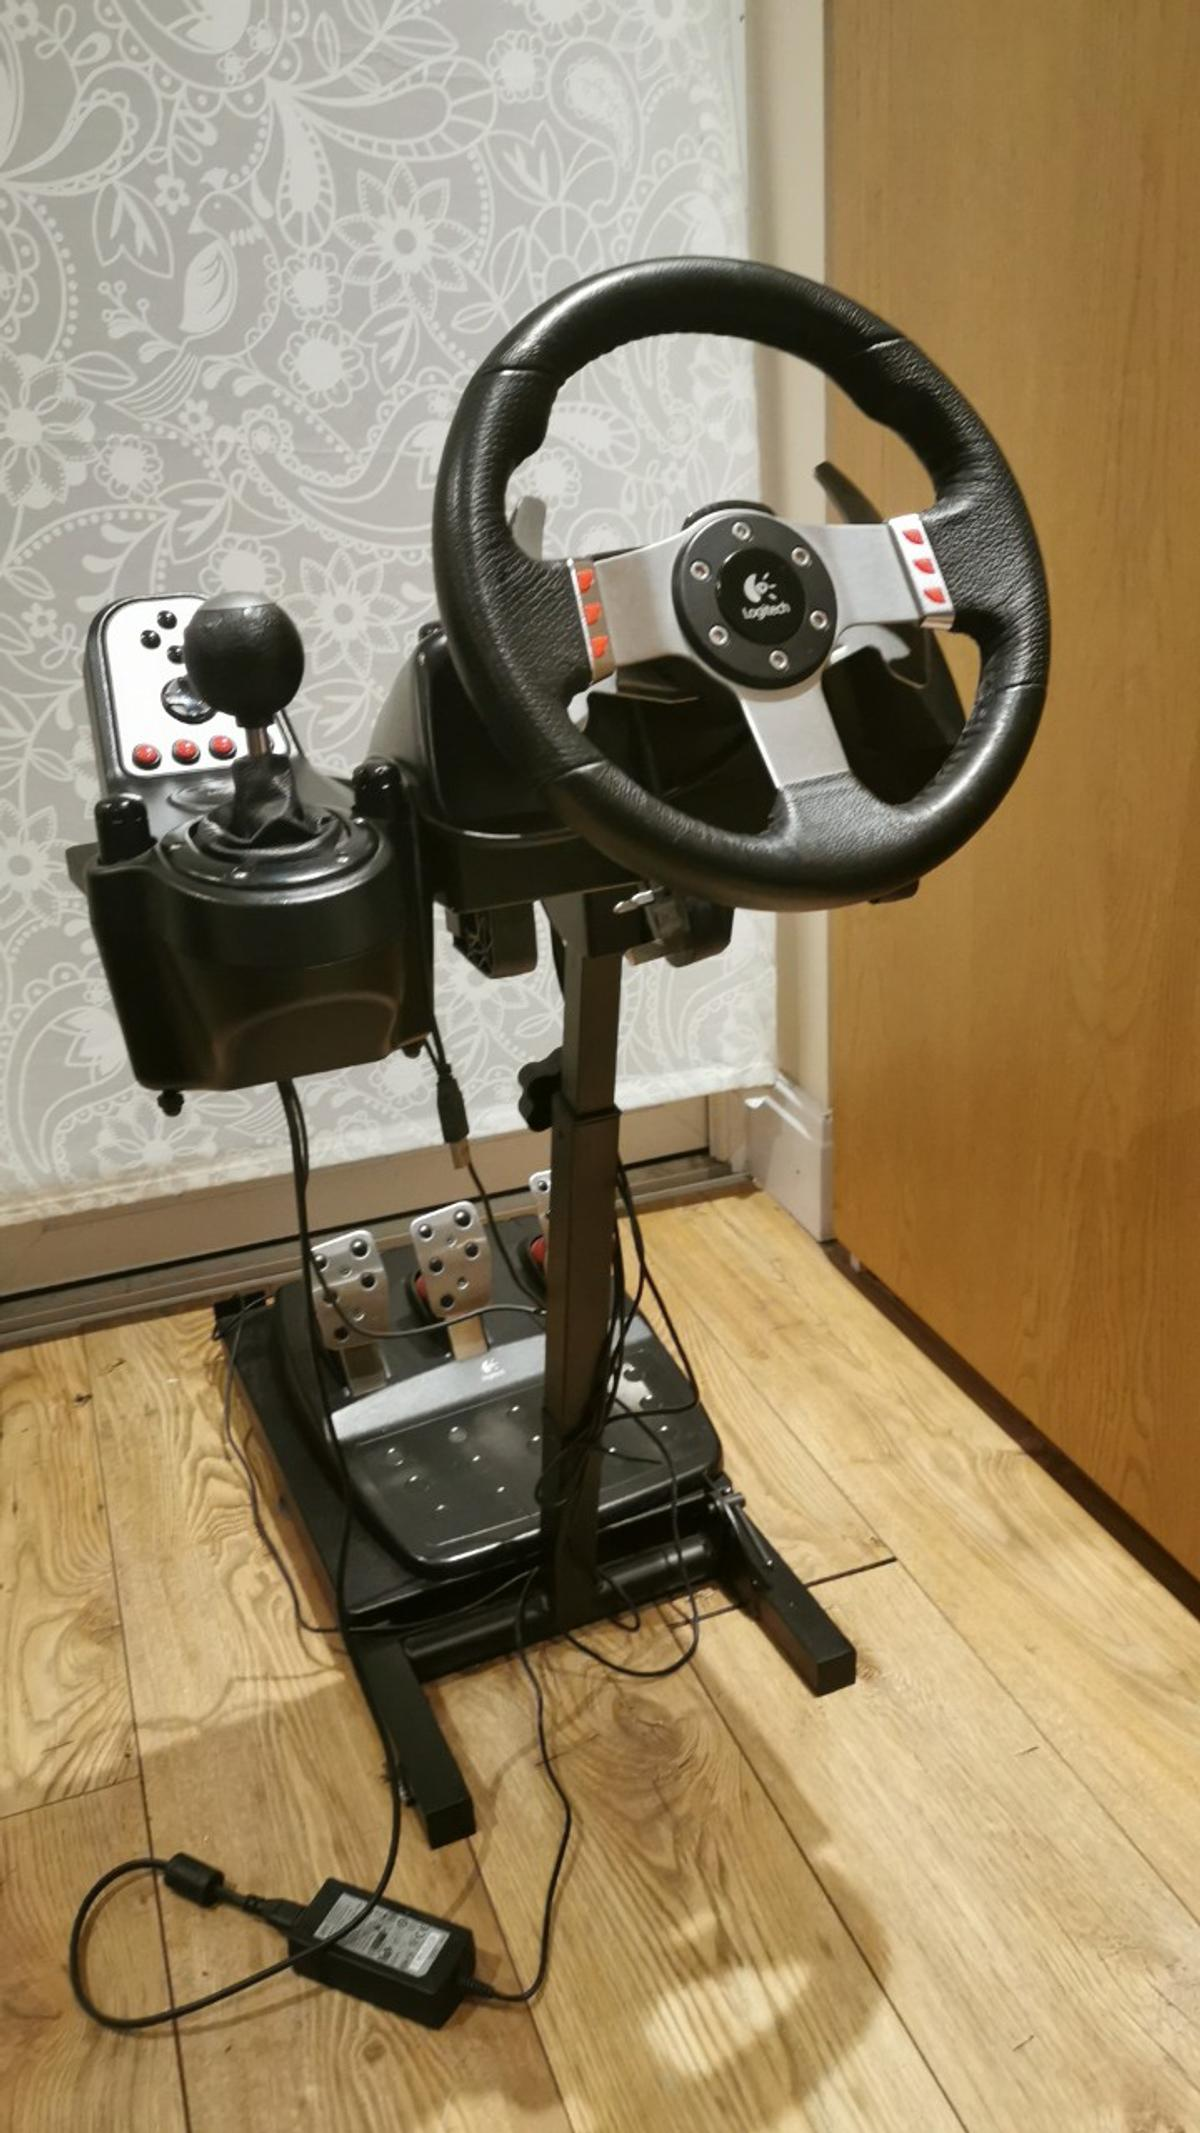 Logitech G27 Steering Wheel Pedals Stand In Ub6 Ealing For 135 00 For Sale Shpock